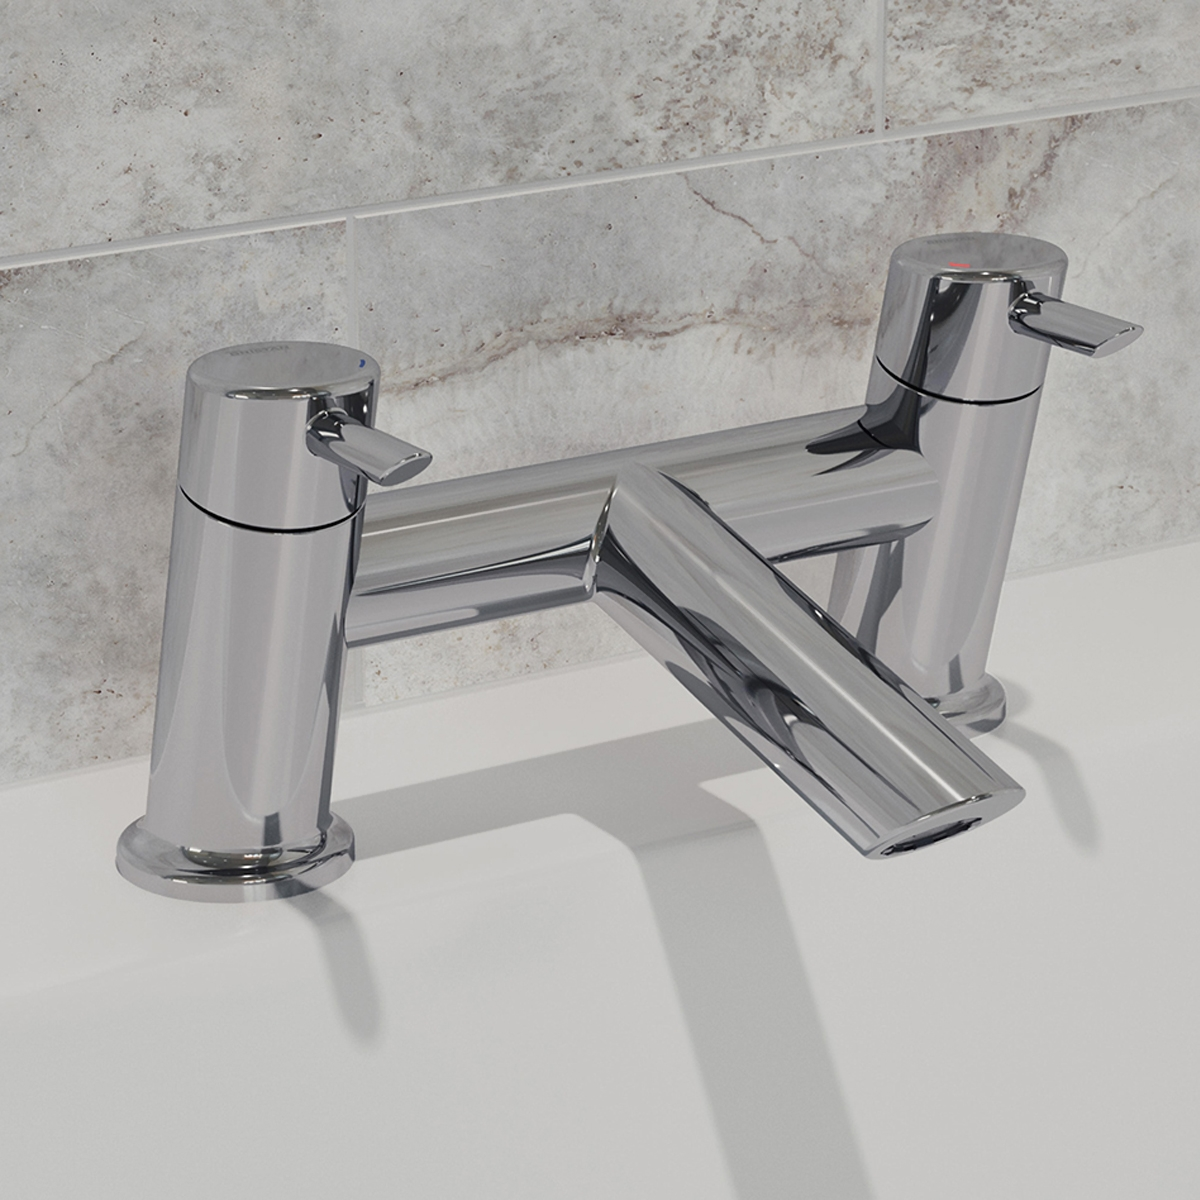 Bristan Acute Bath Filler Tap Pillar Mounted - Chrome-0